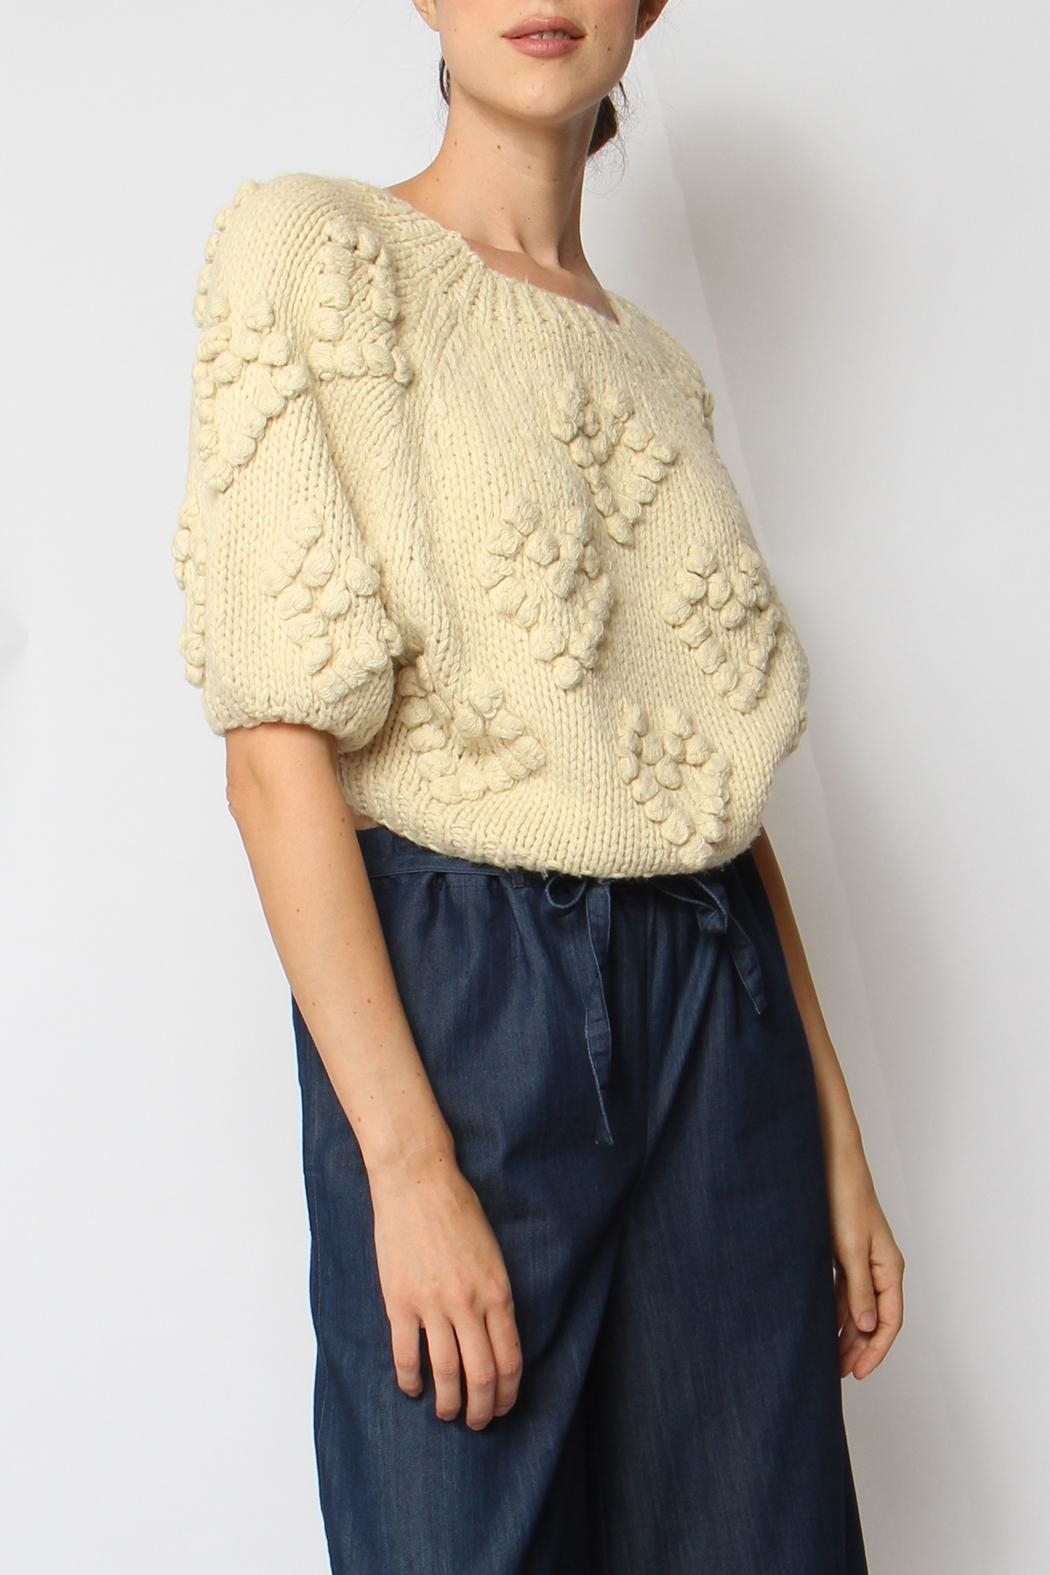 Callahan Couer Cropped Sweater - Main Image